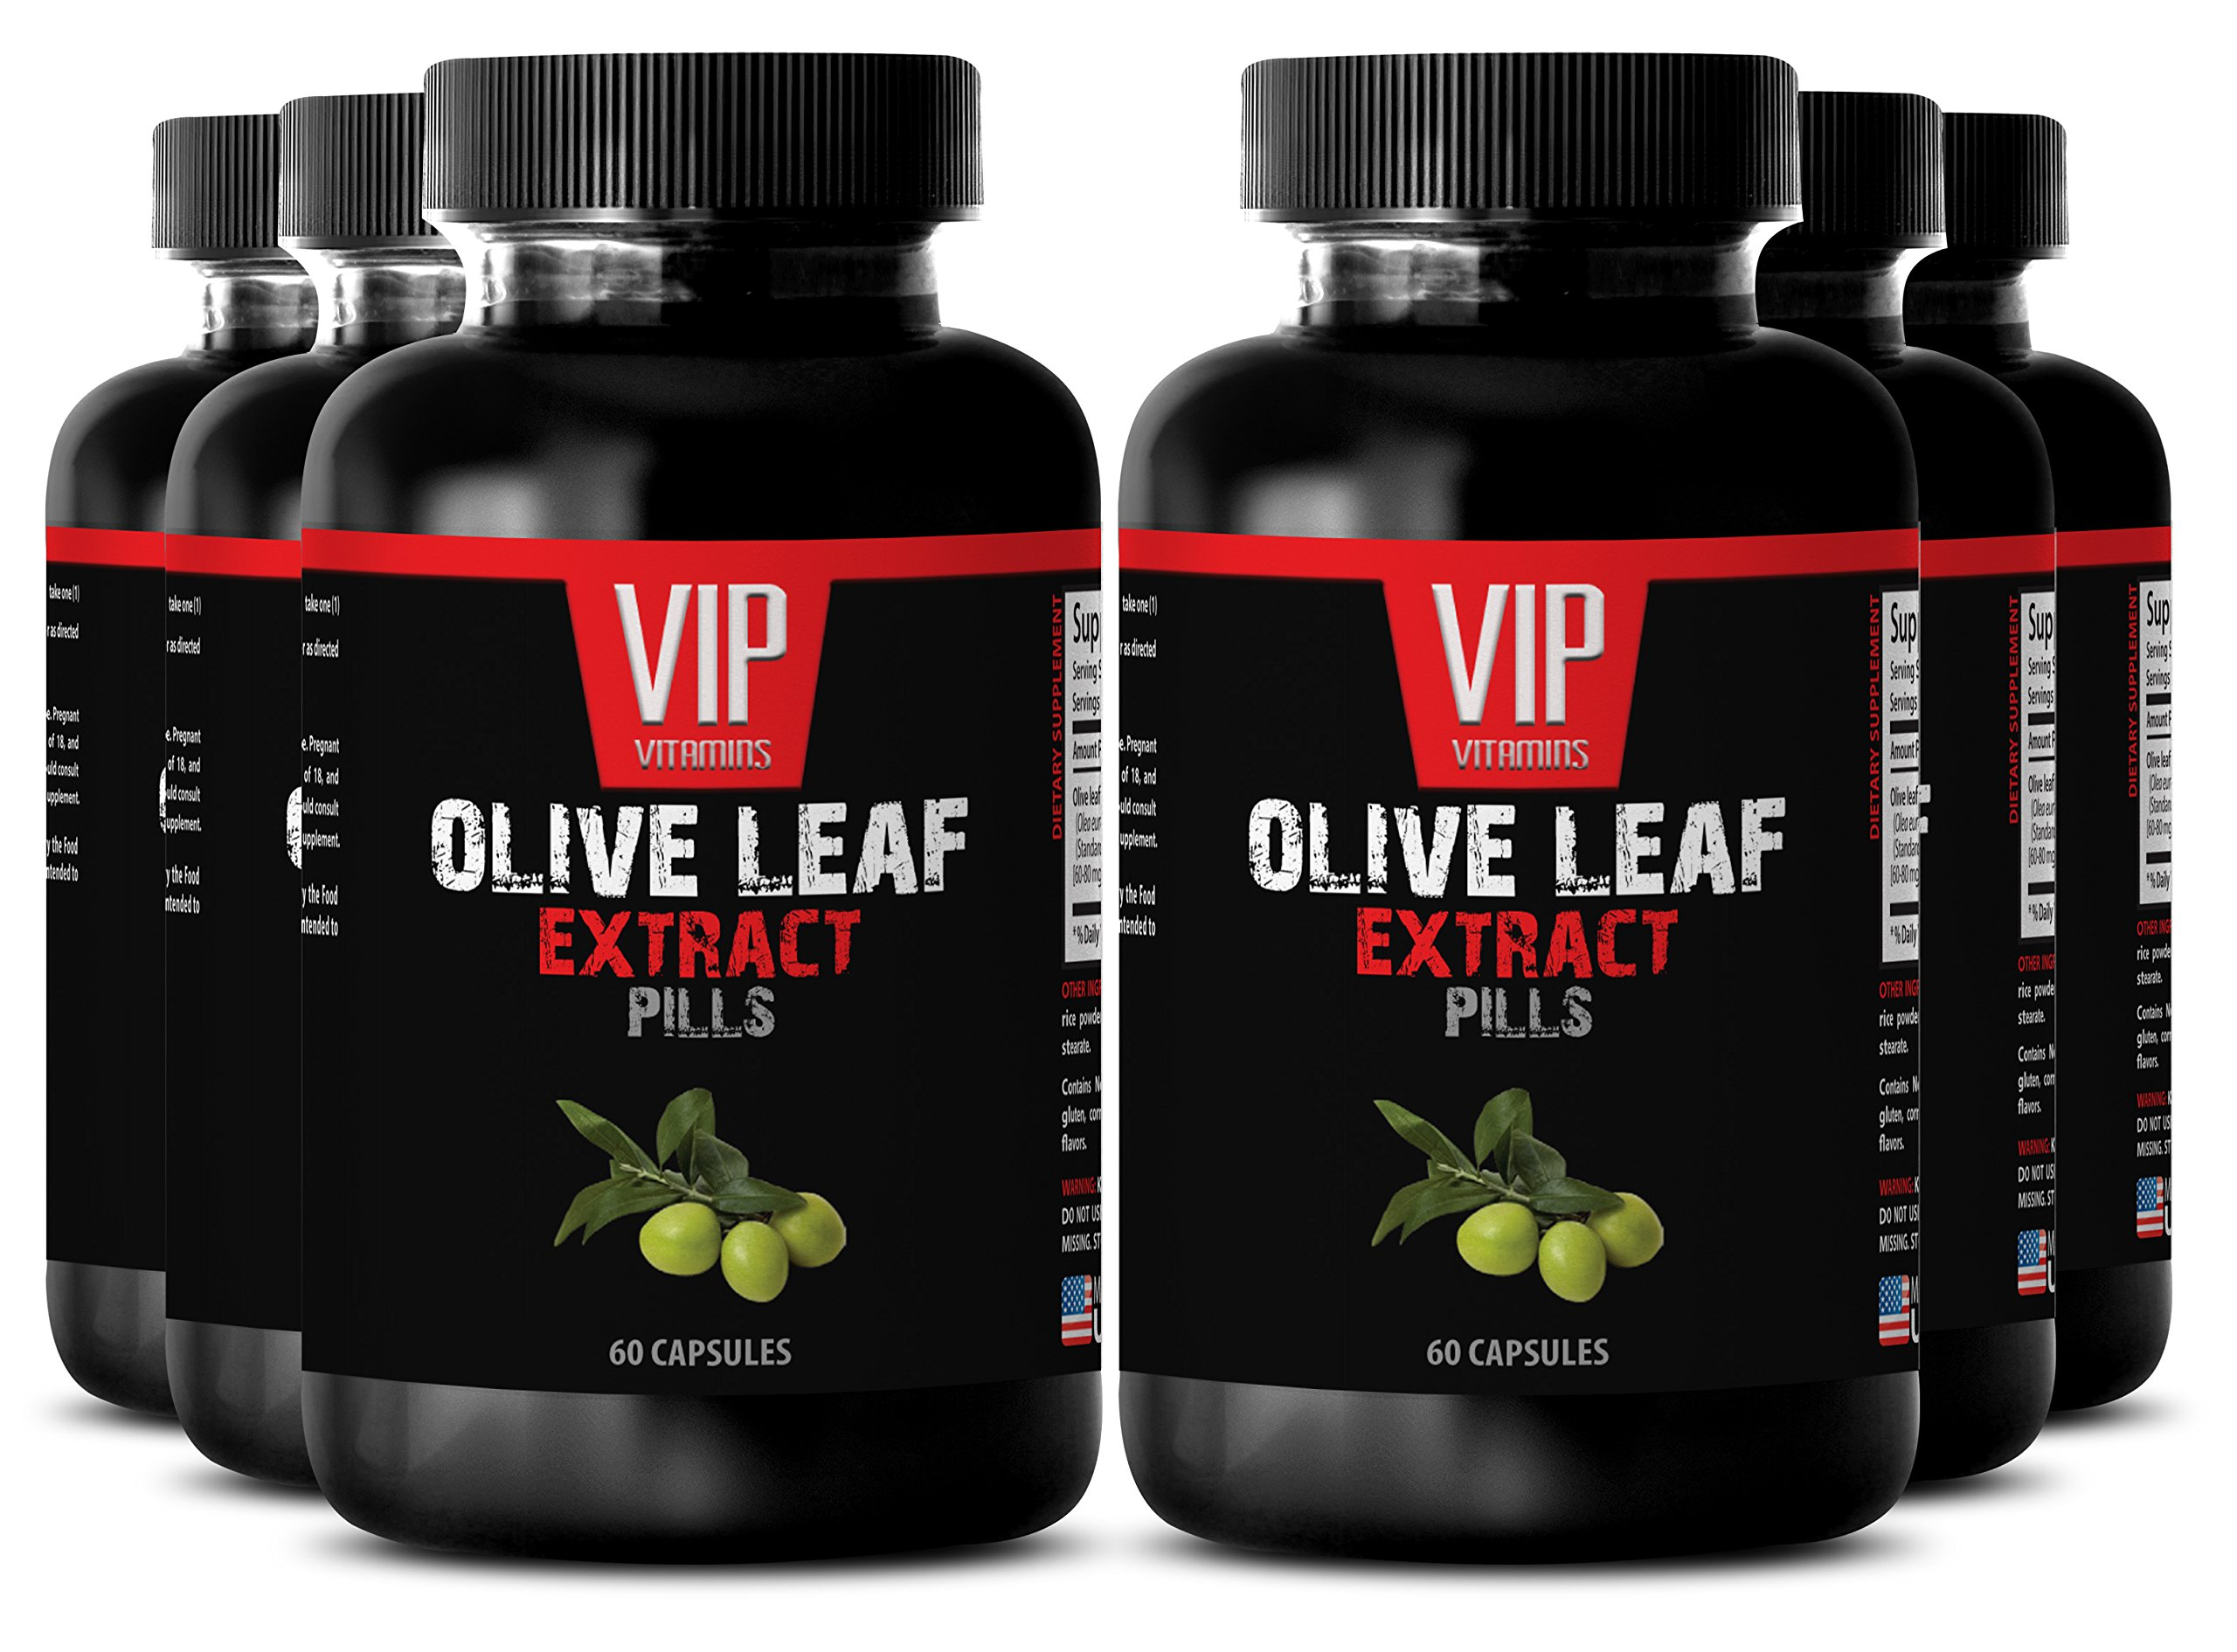 Blood pressure herbs - OLIVE LEAF EXTRACT - Blood sugar support - 6 Bottles 360 Capsules